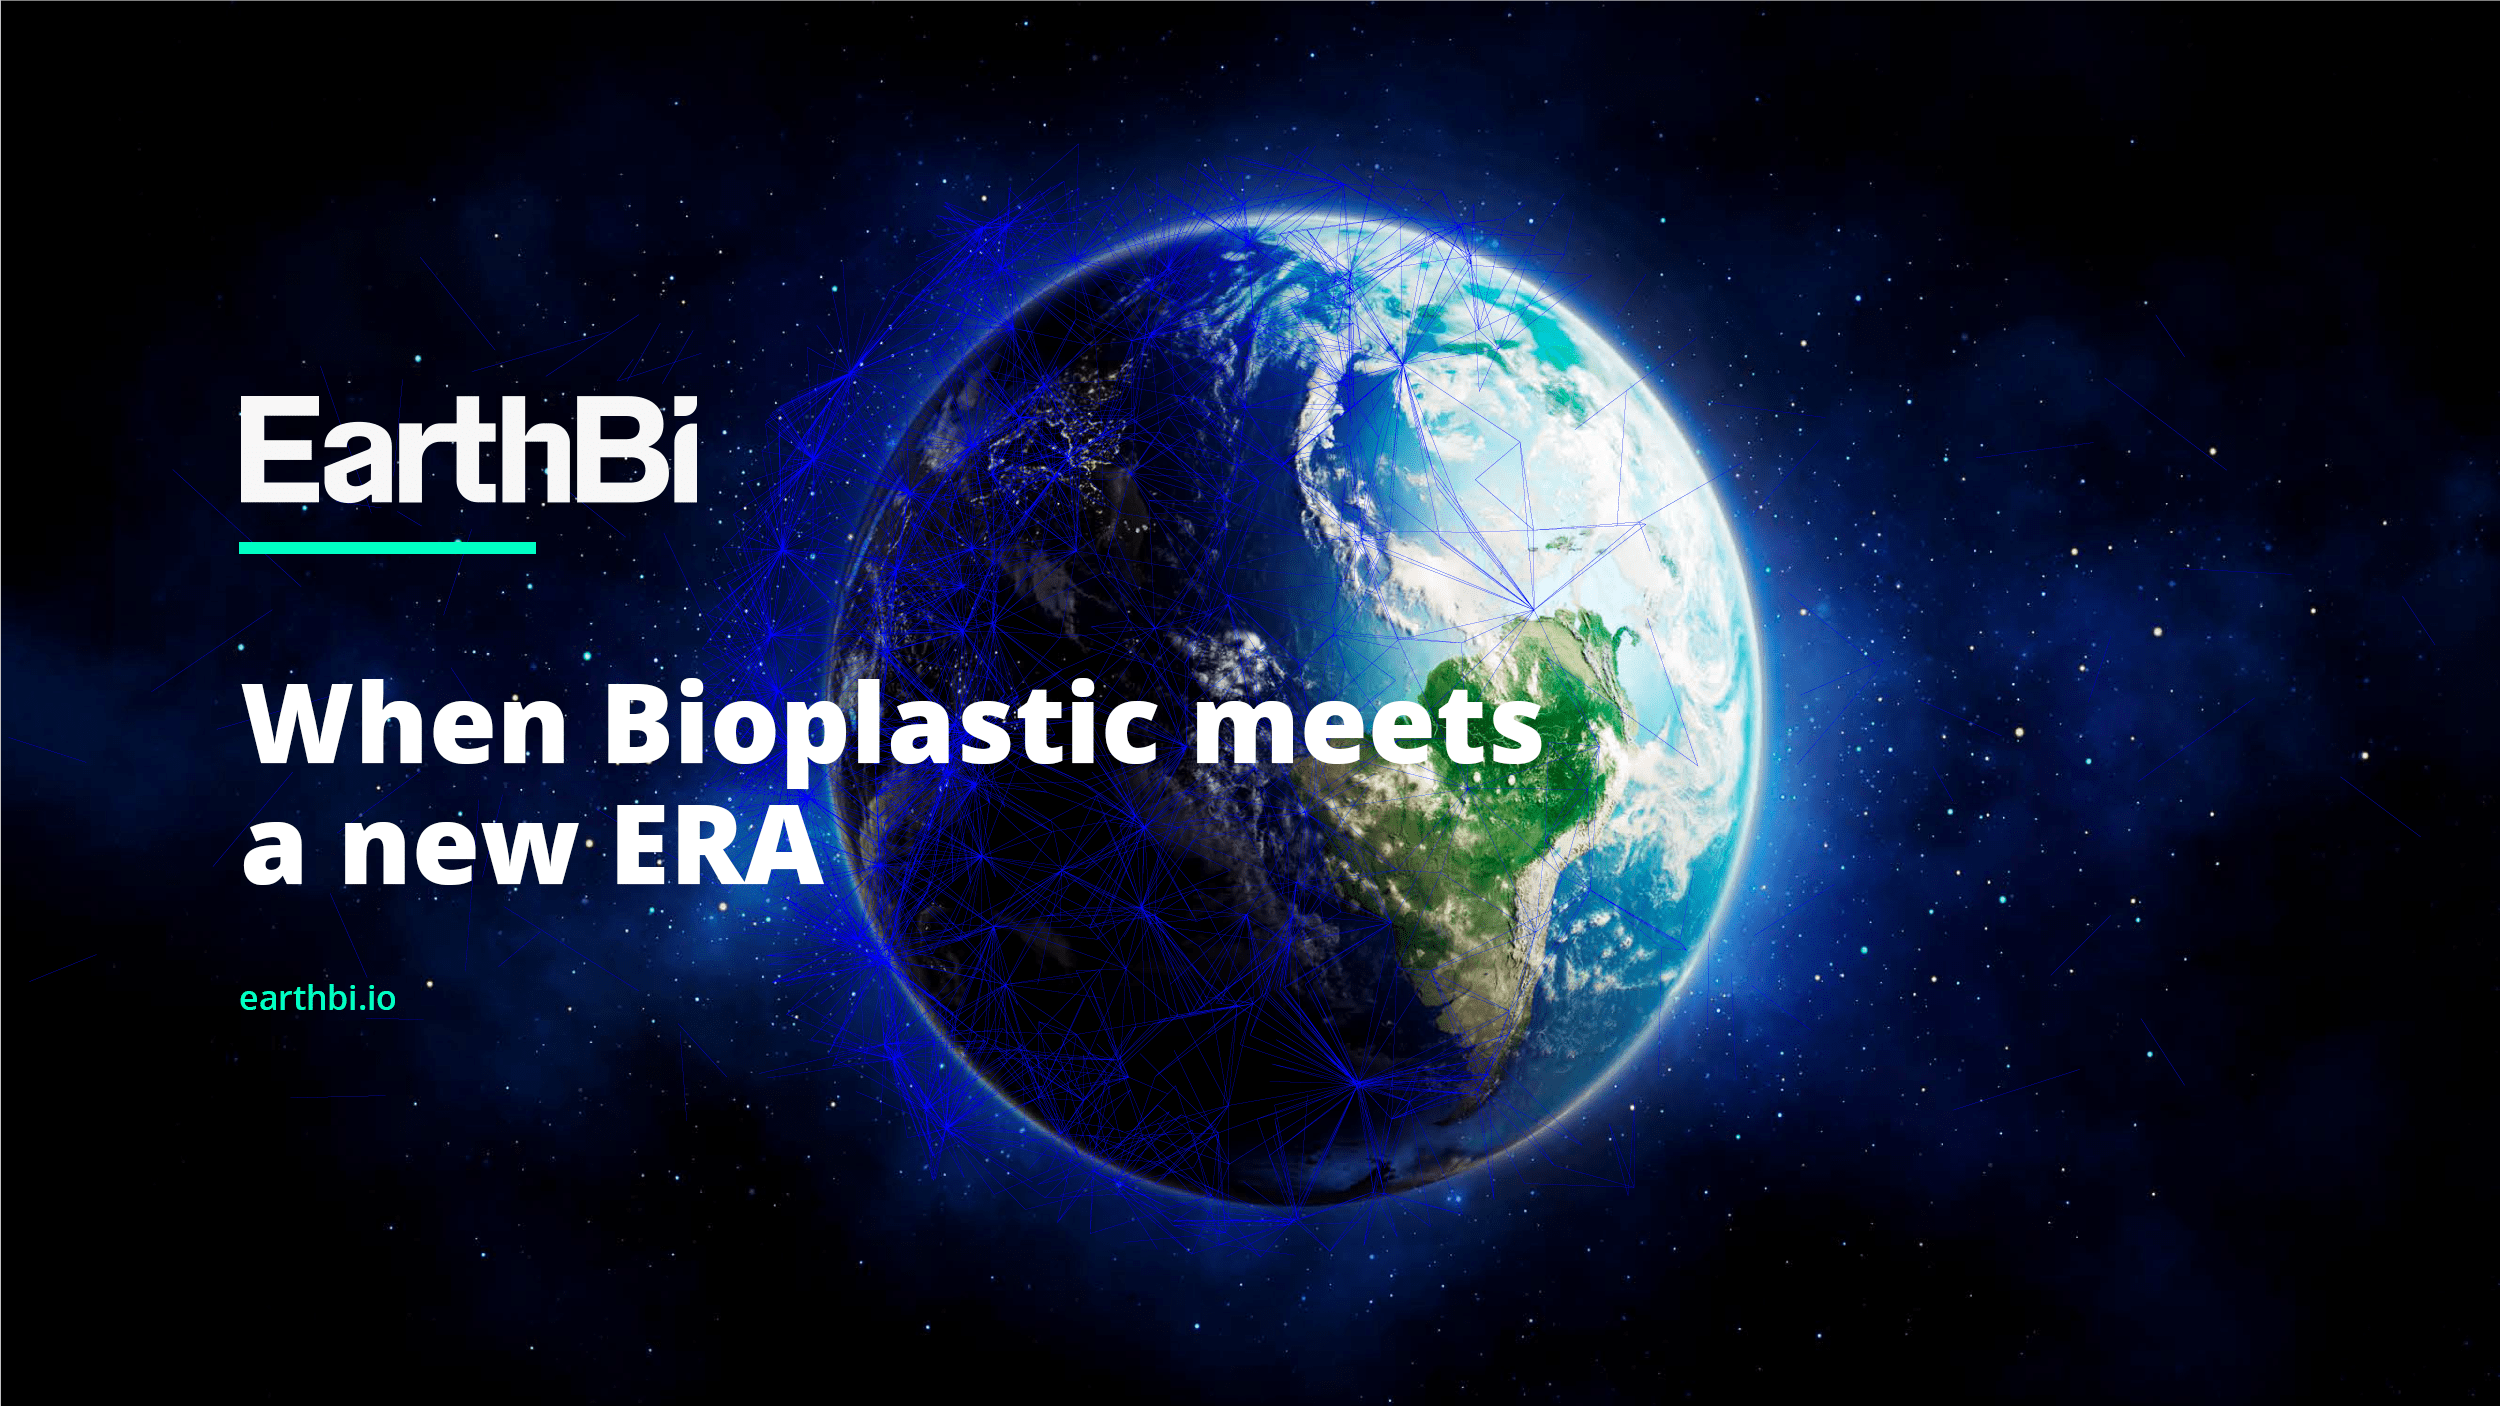 earthbi bioplastica blockchain